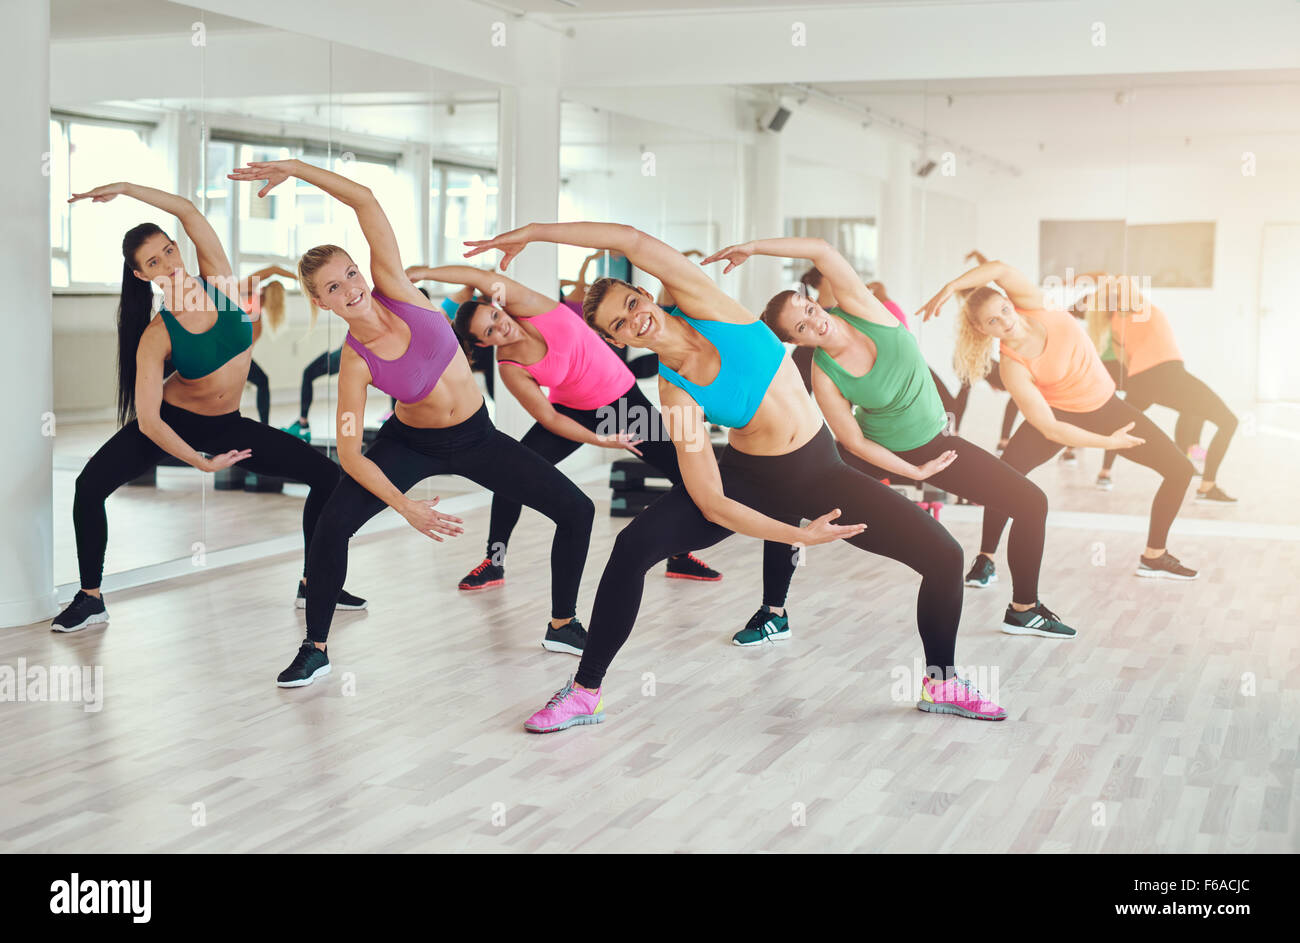 Aerobics class at a gym with a group of attractive fit young women in colorful sportswear working out in synchronisation, - Stock Image